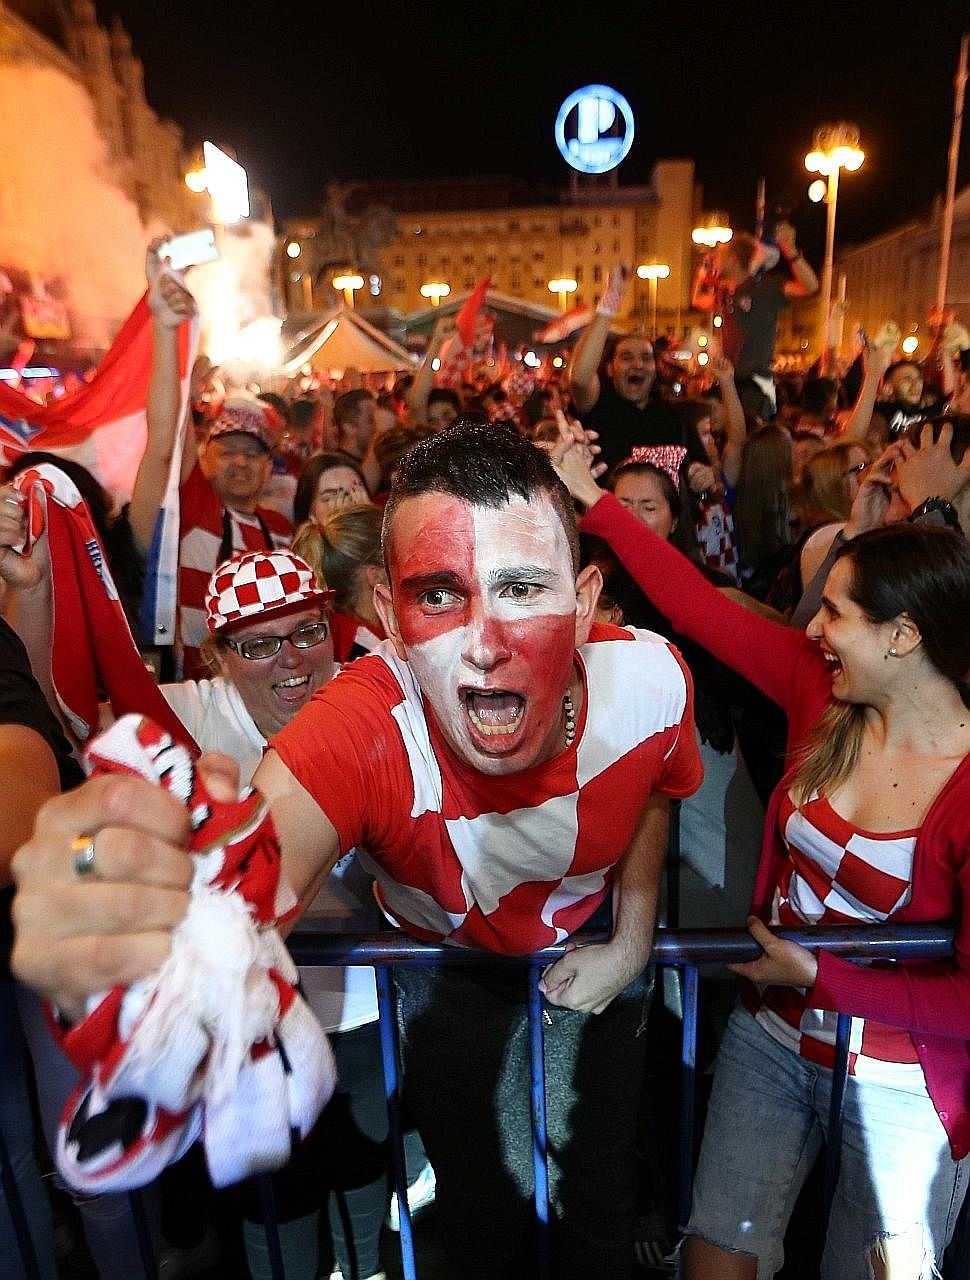 Croats painting the town red - and white - as they go wild in celebration after their country beat England 2-1 in extra time on Wednesday to qualify for the World Cup final for the first time.